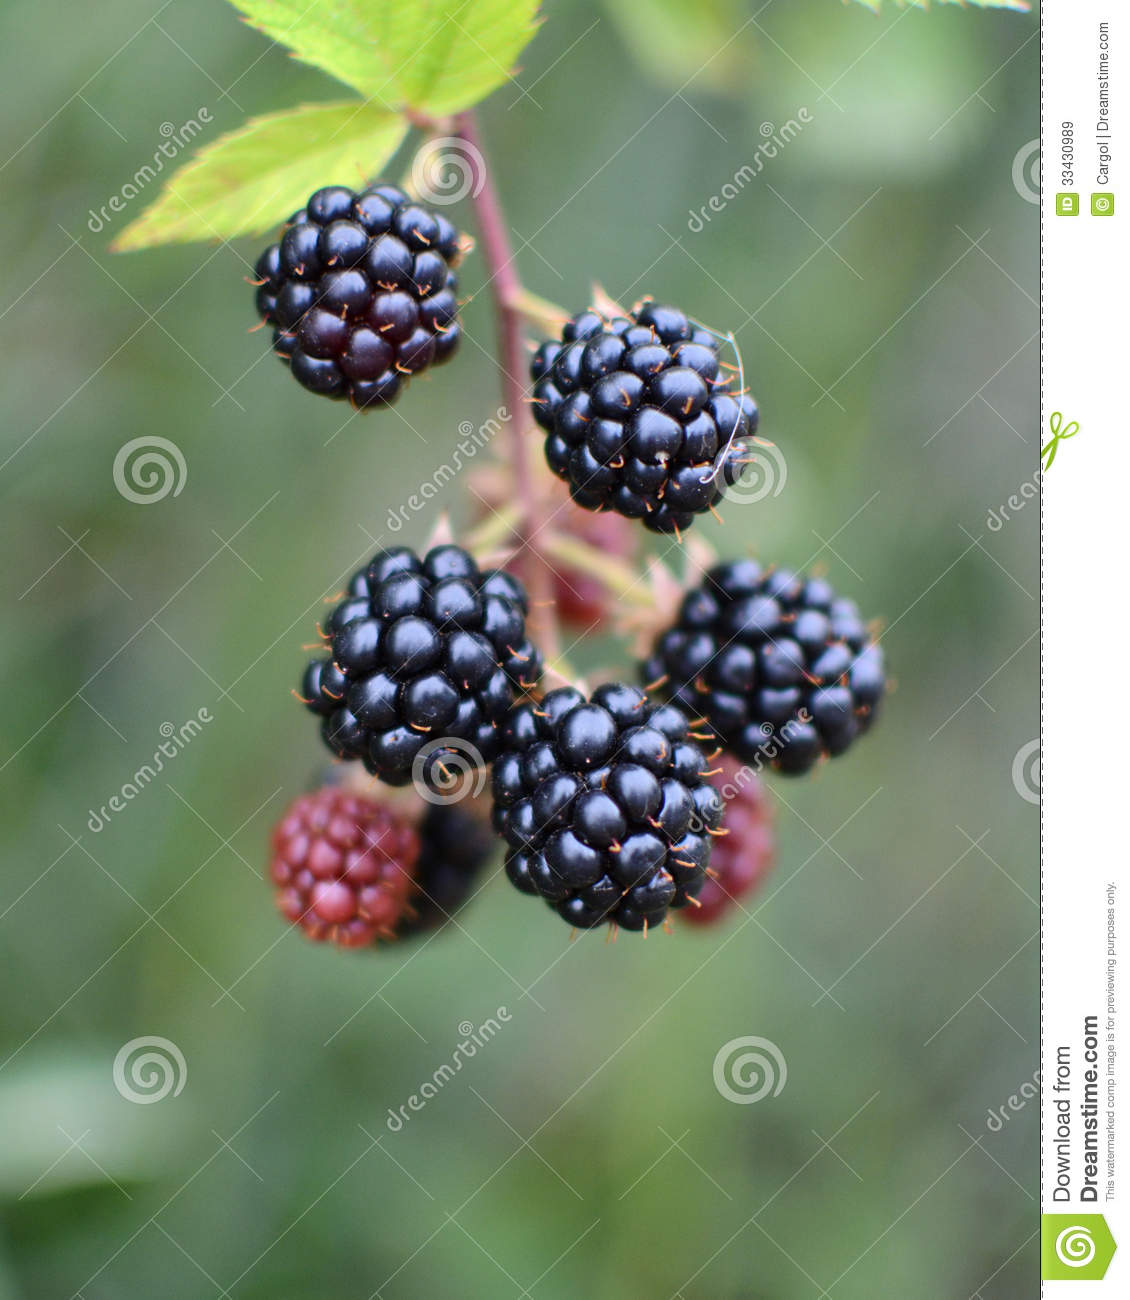 Bunch Of Blackberries Royalty Free Stock Images